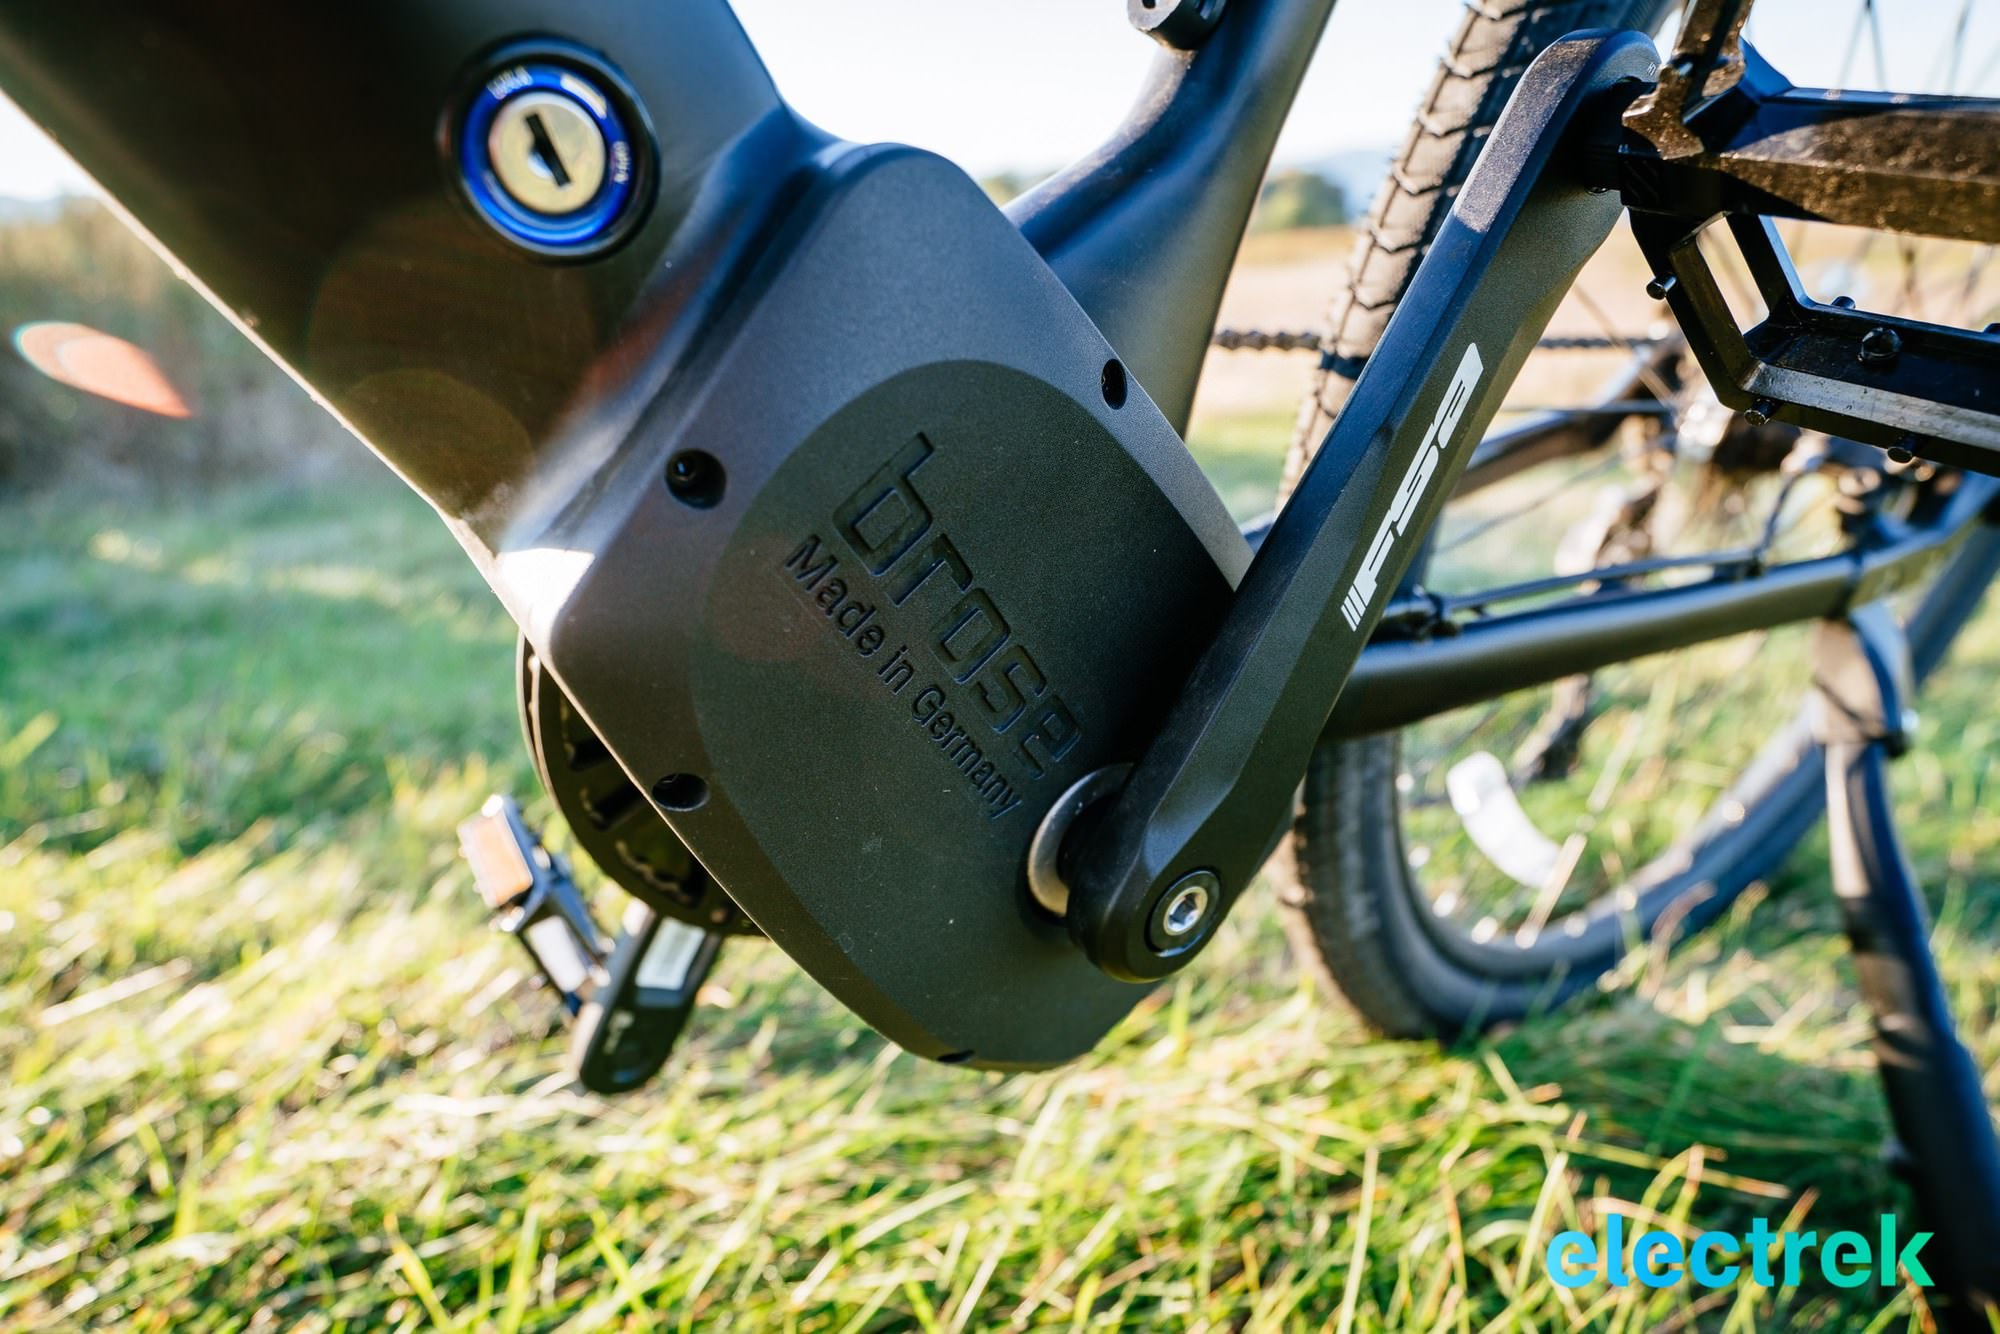 The Electrek Review: Raleigh Redux IE w/Brose drivetrain the new